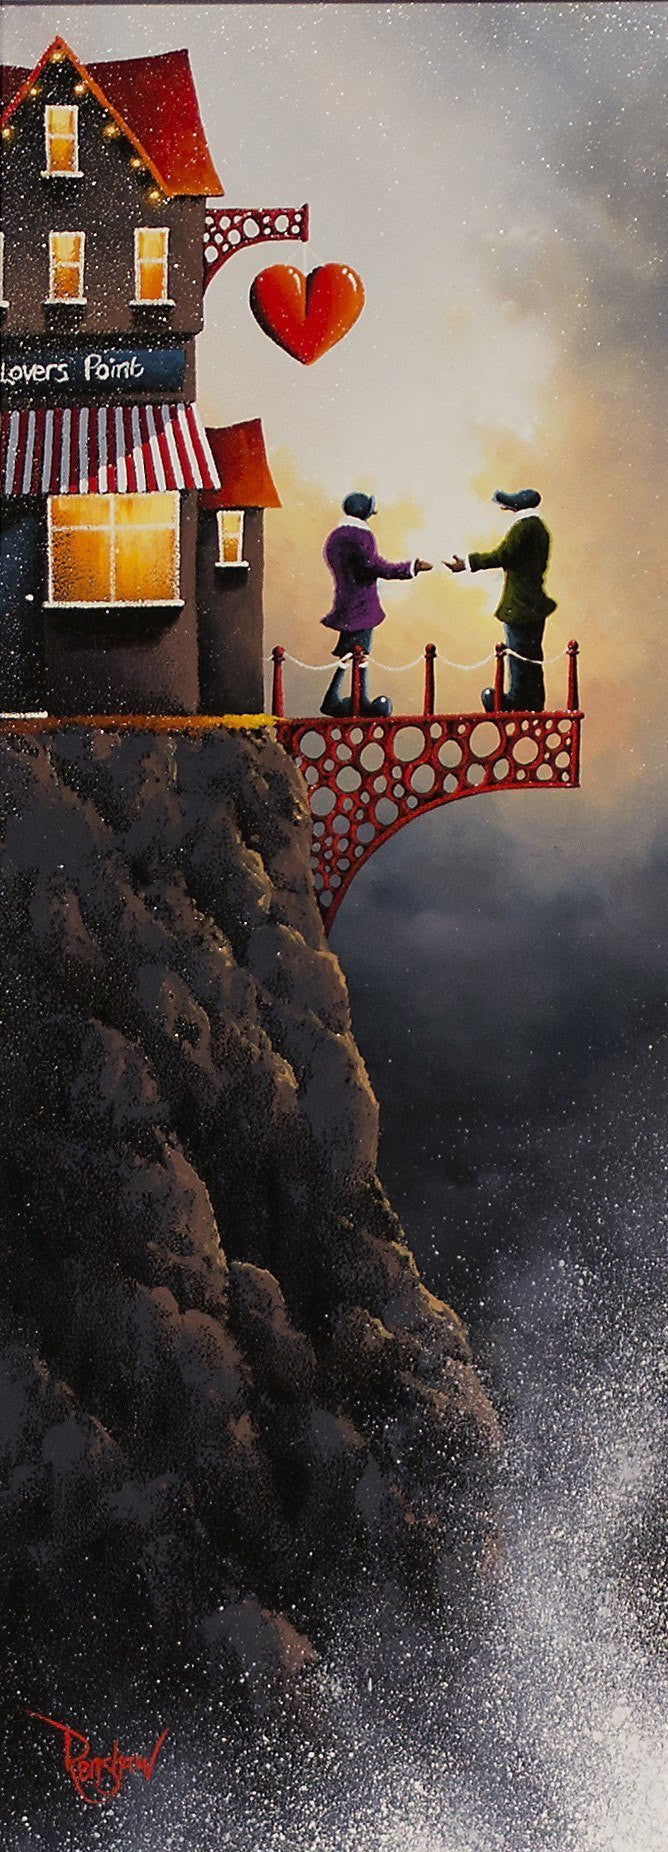 Lovers Point - SOLD David Renshaw